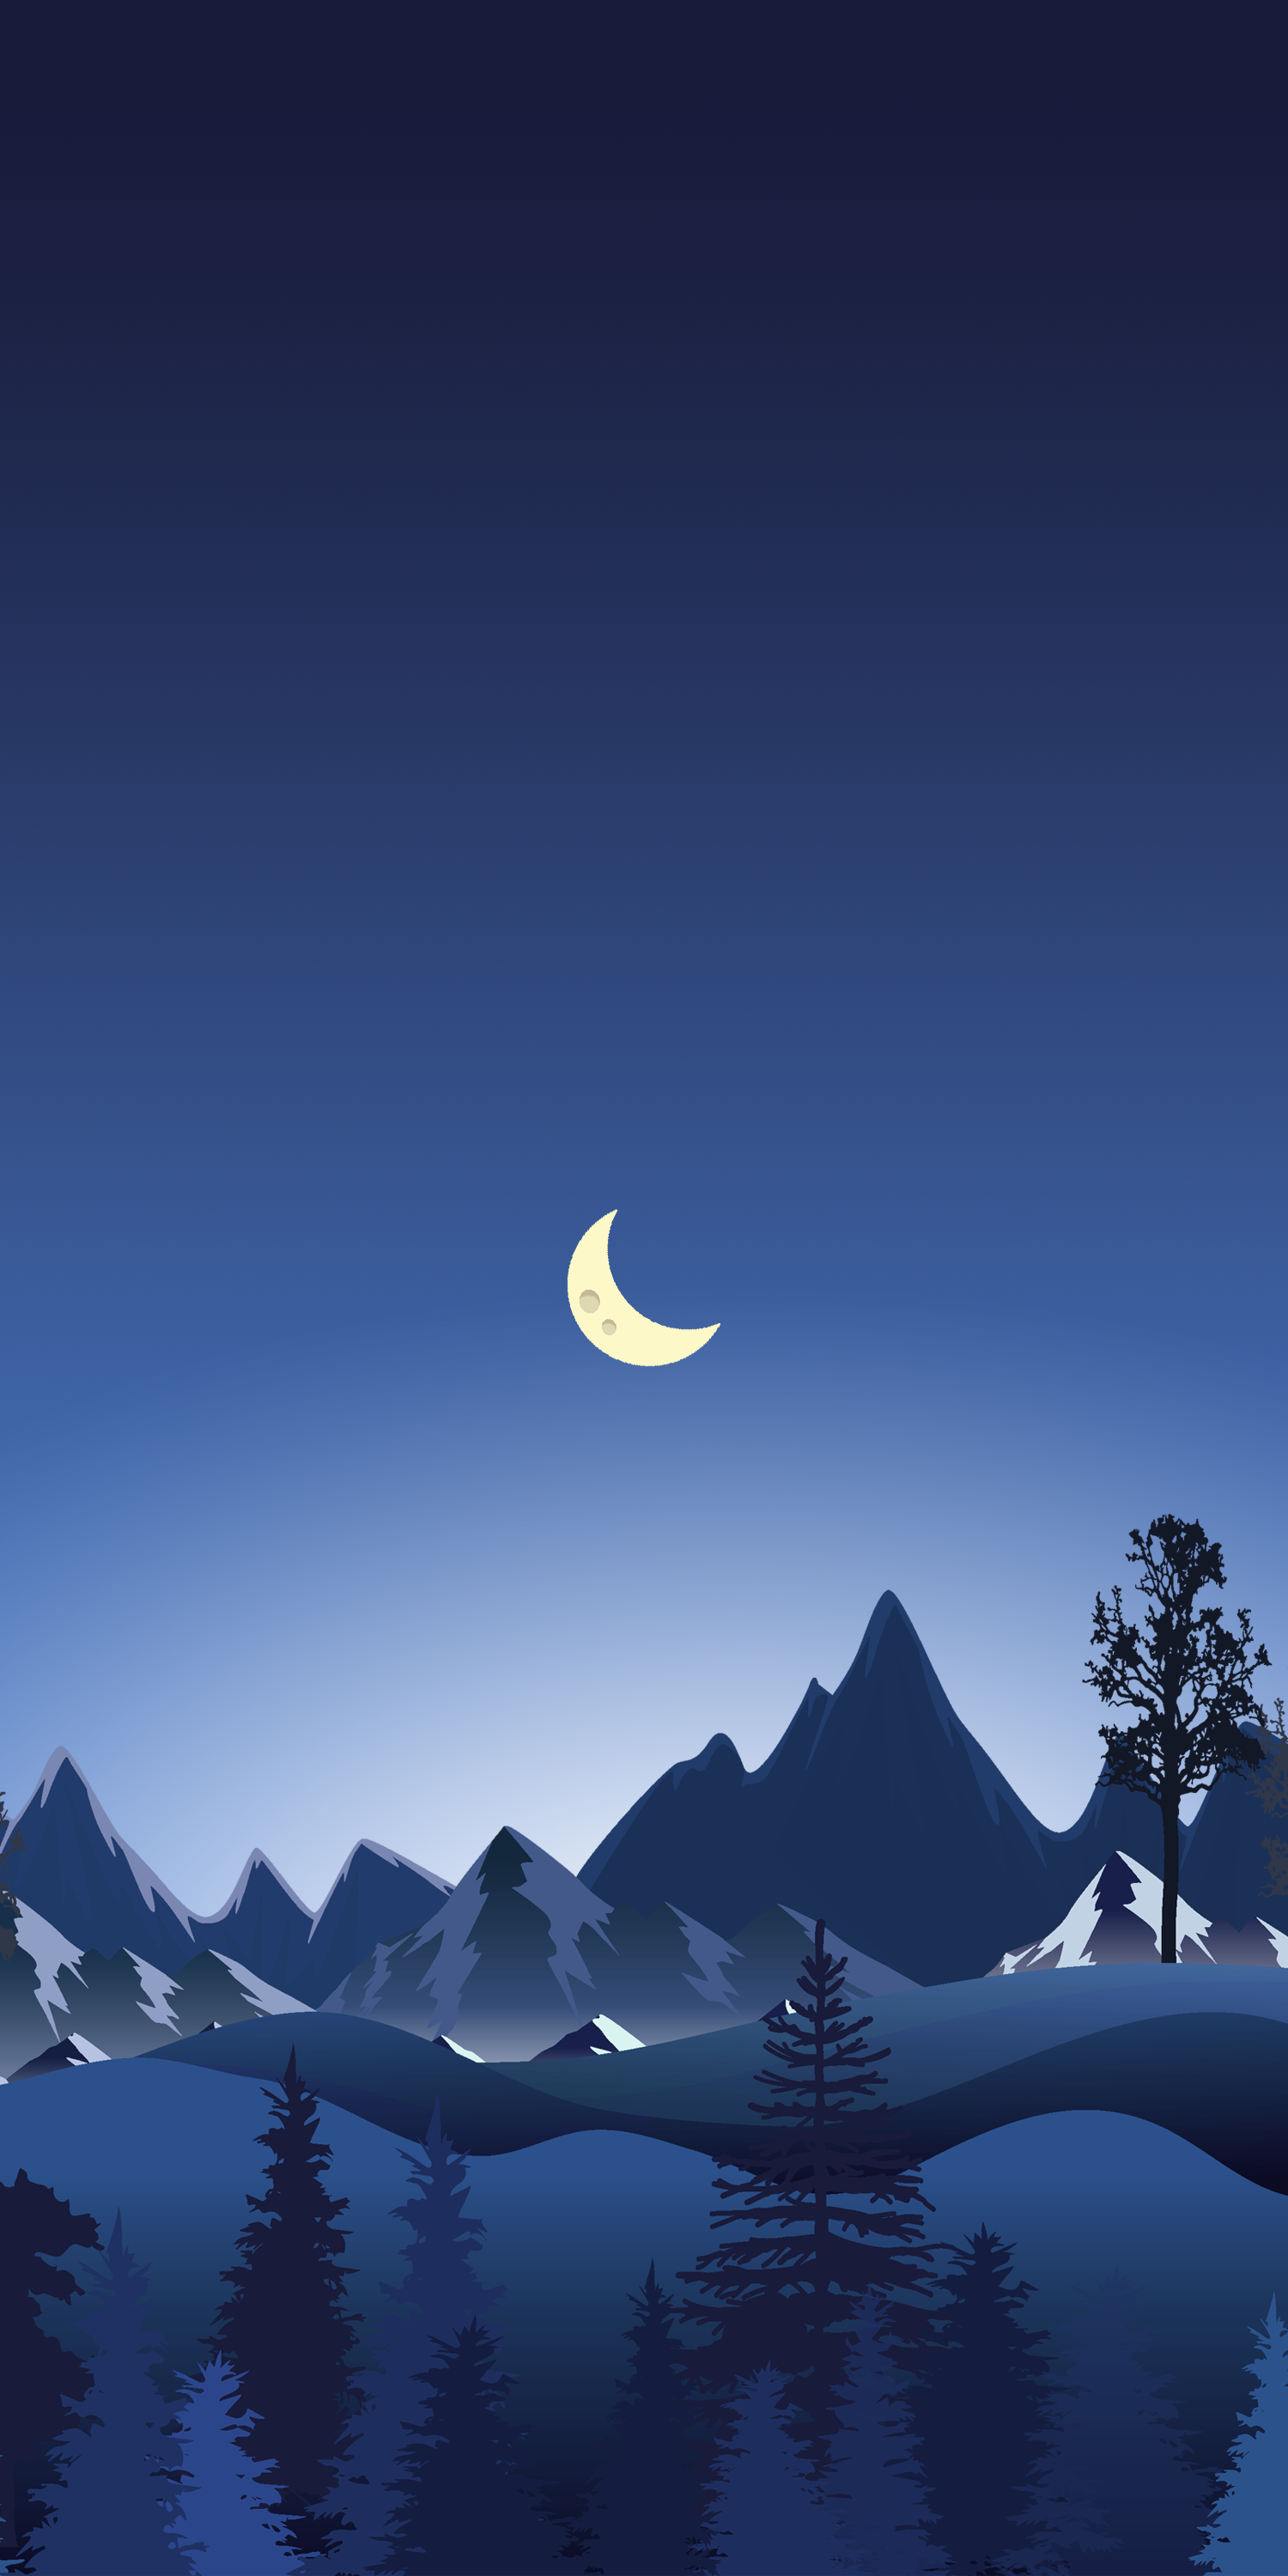 Snowy Wallpaper Illustrations For Iphone In 2020 Scenery Wallpaper Art Wallpaper Iphone Landscape Wallpaper